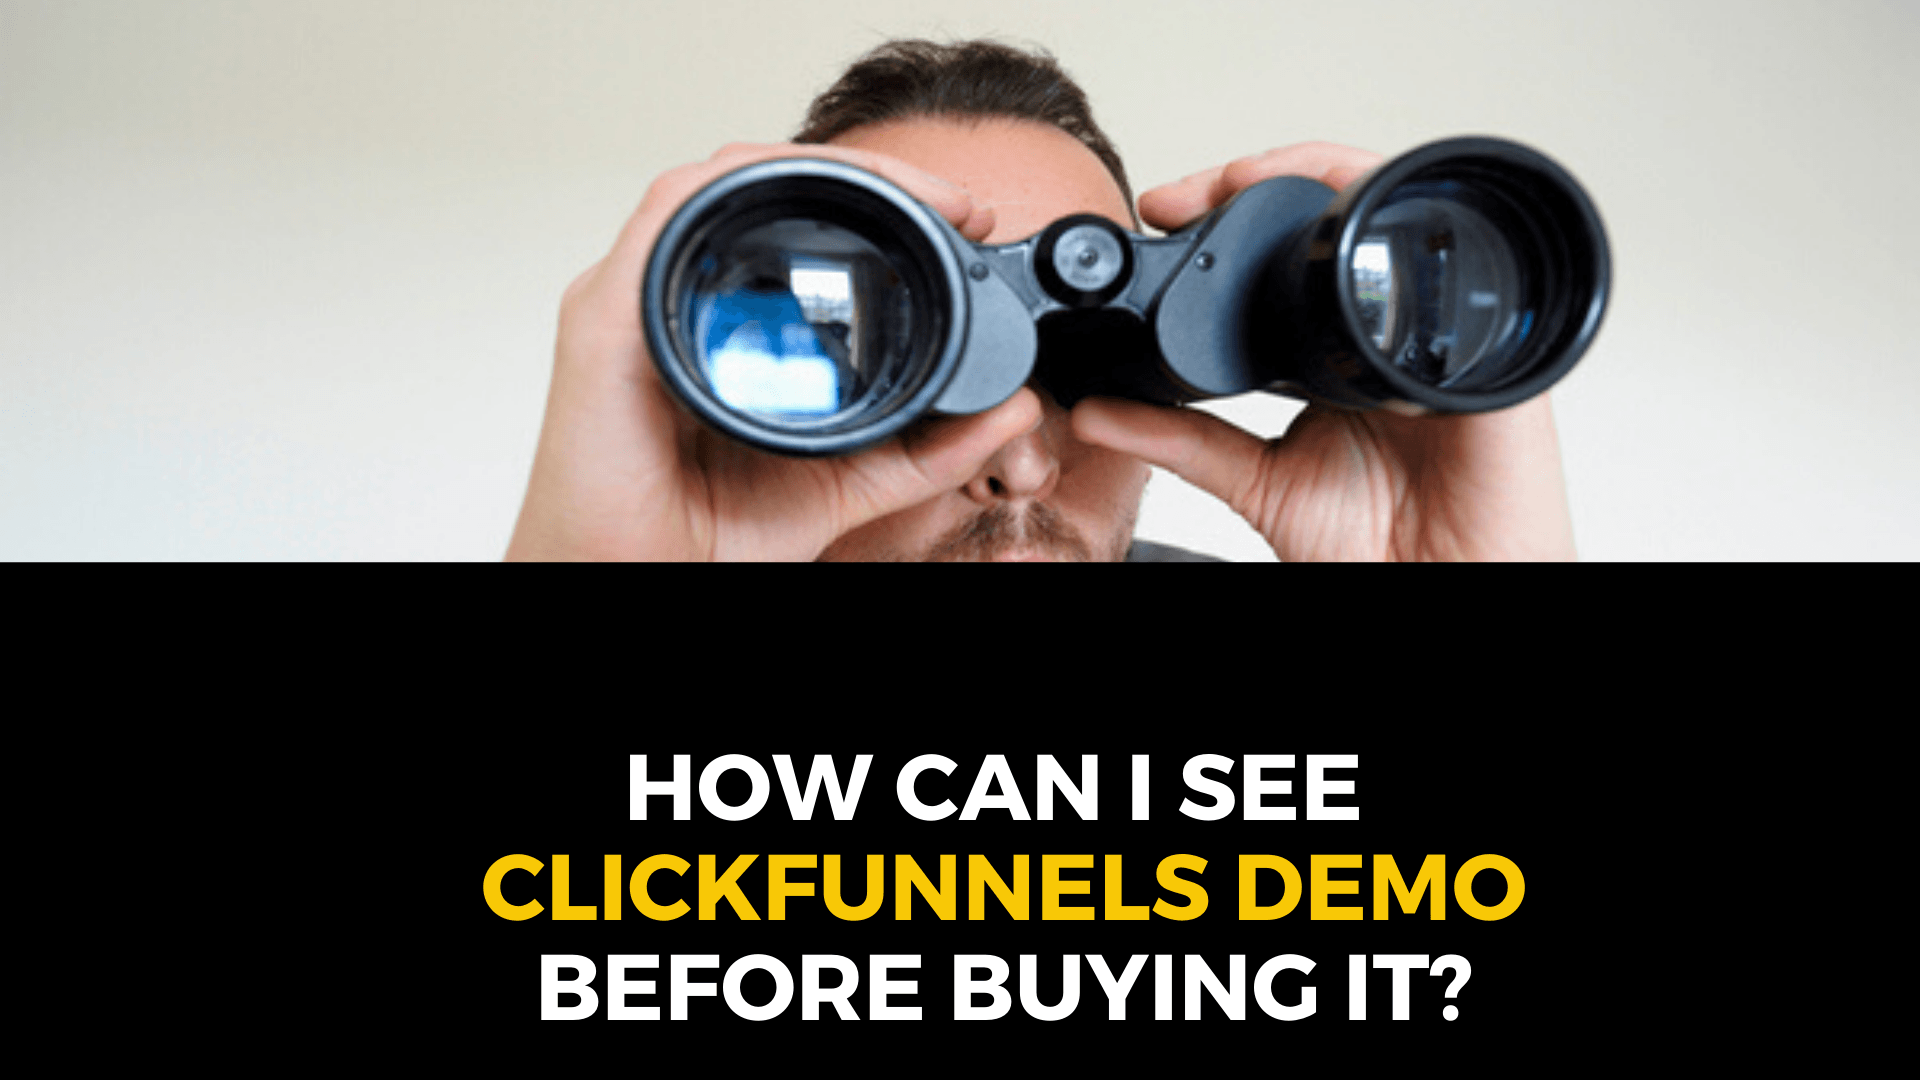 How can I see ClickFunnels Demo before buying it?